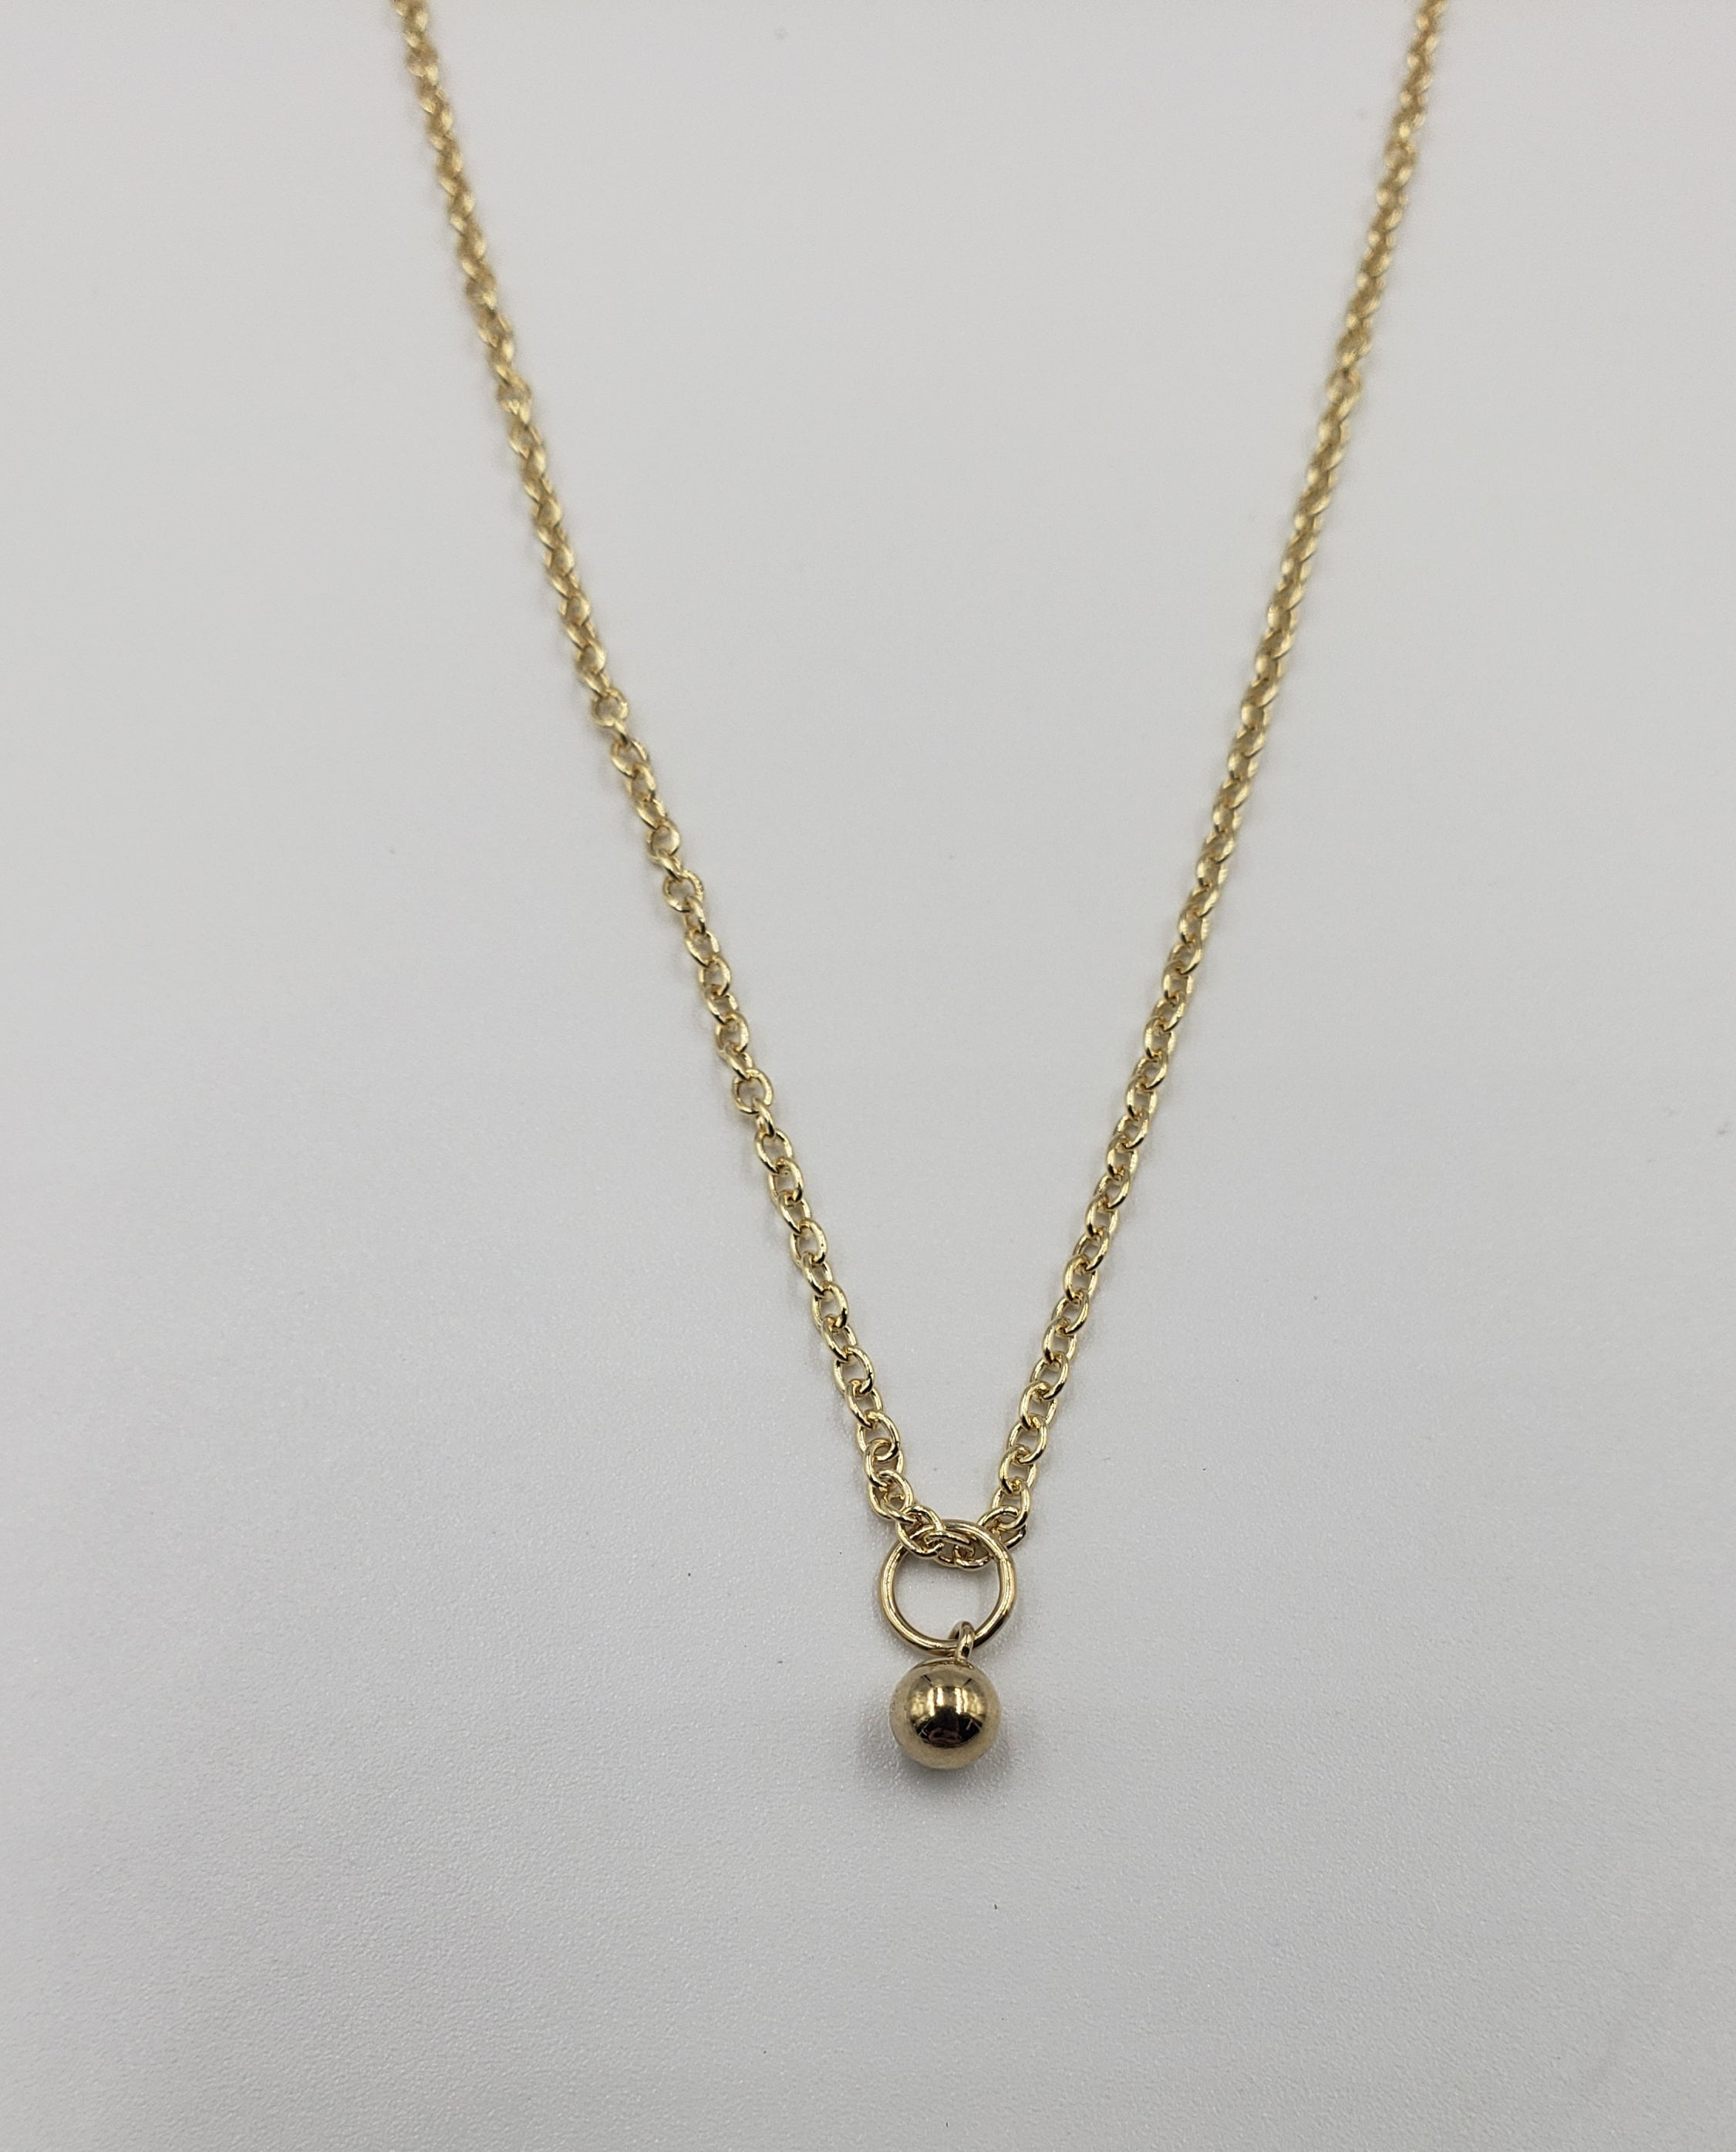 Gold Filled Ball Charm Necklace